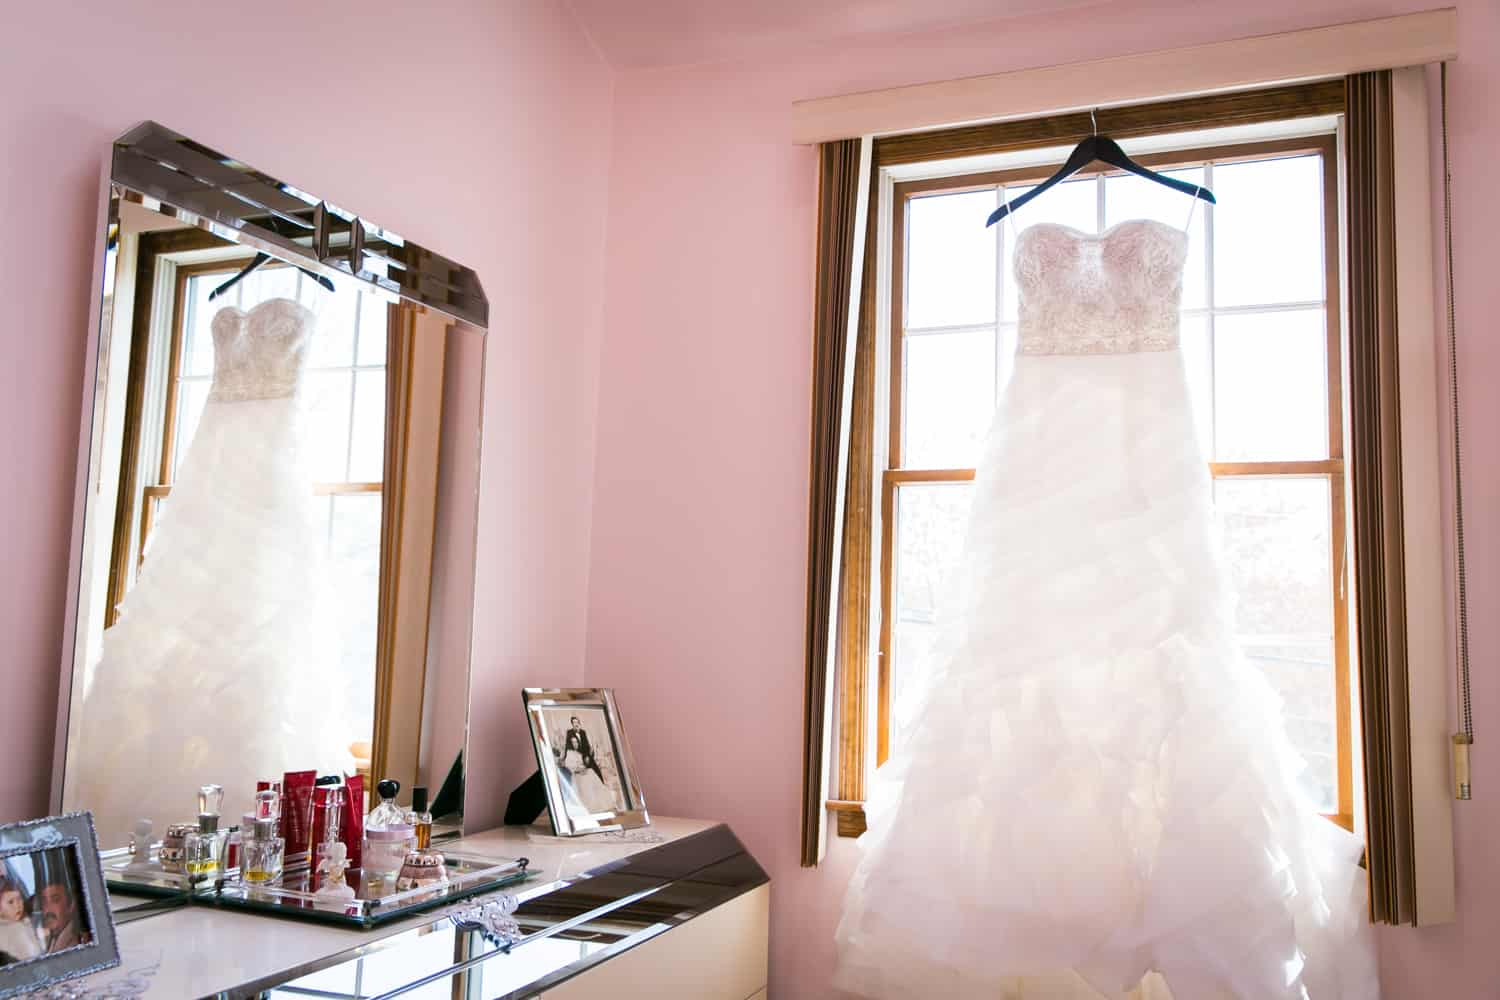 Wedding dress hanging in window and reflected in mirror for an article called 'Do you need a second photographer?'